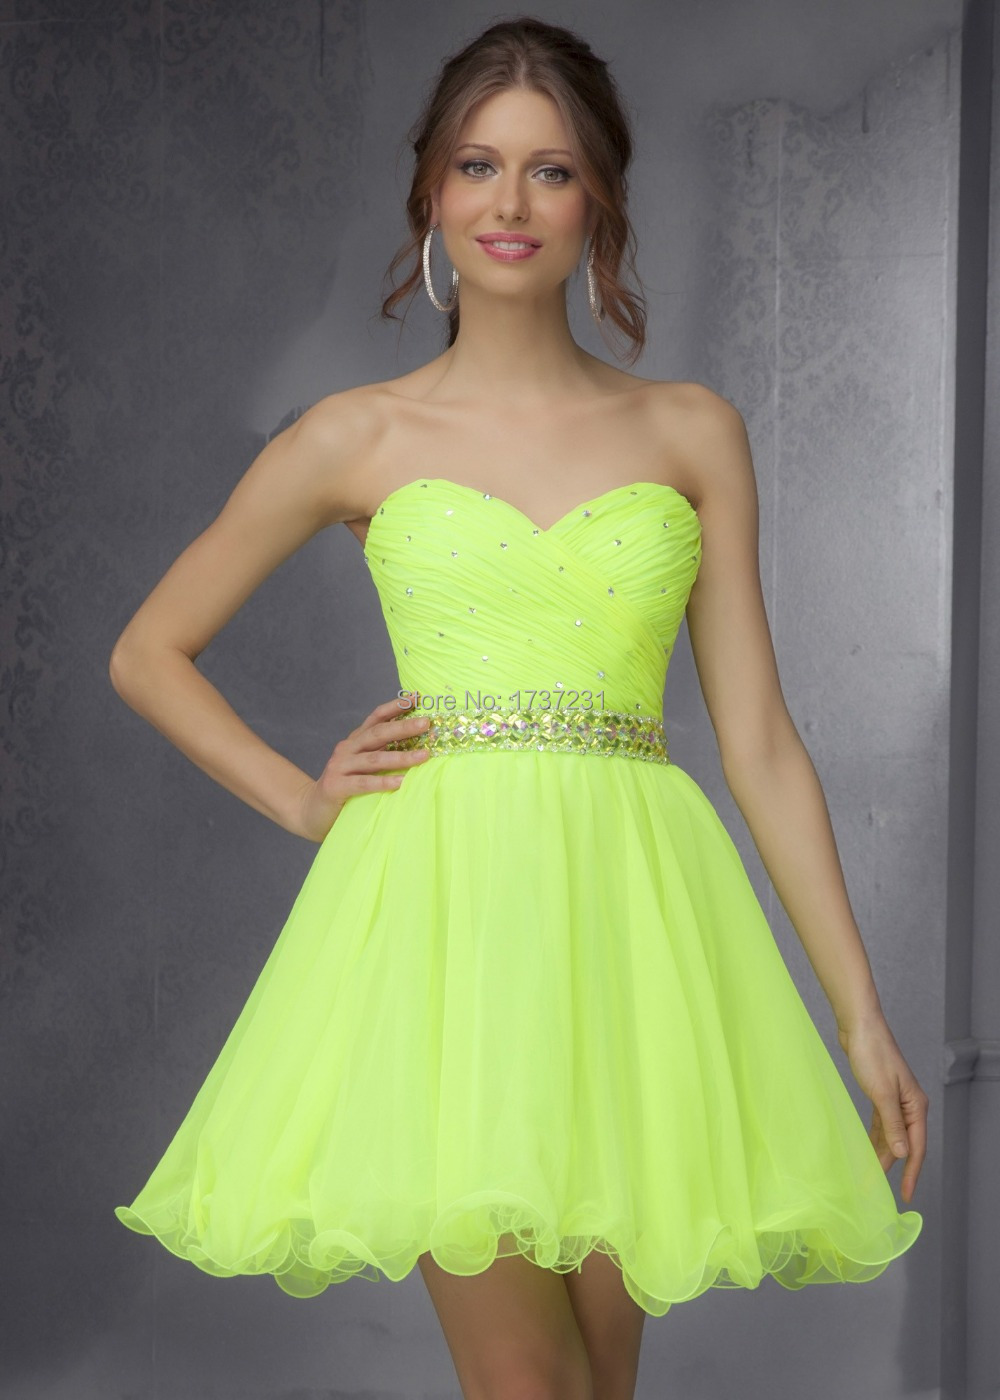 Popular Neon Homecoming Dresses-Buy Cheap Neon Homecoming Dresses ...